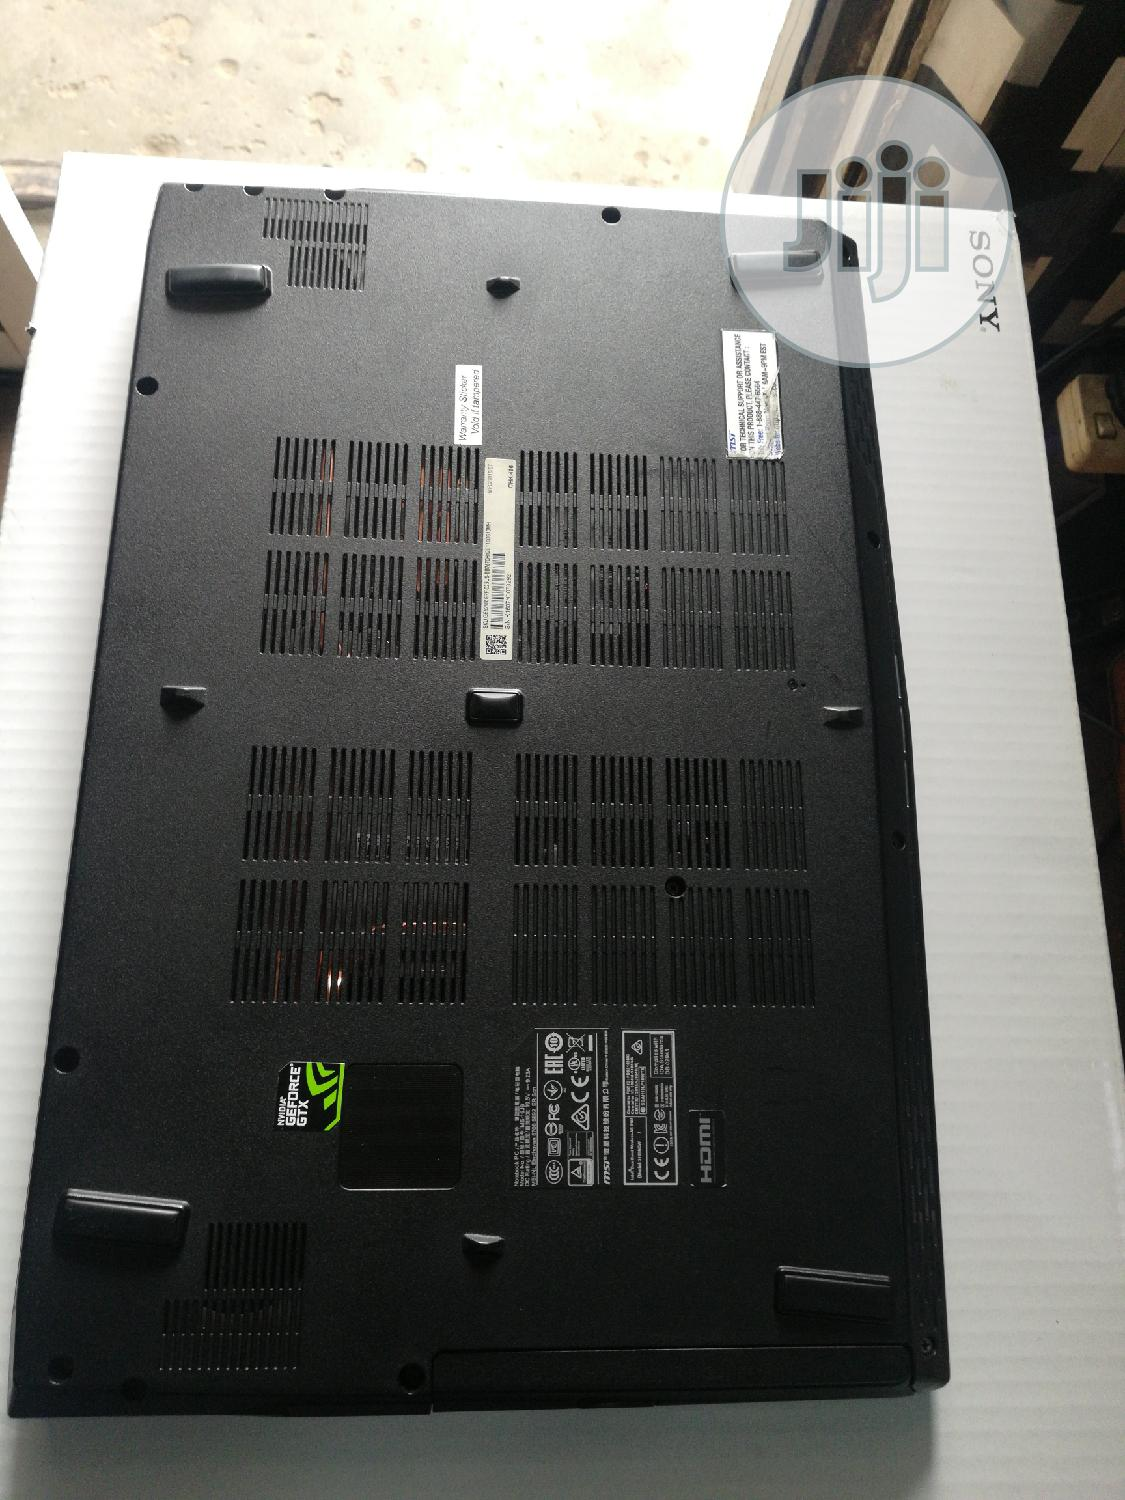 Laptop MSI GS63VR 7RG Stealth Pro 12GB Intel Core i7 HDD 1T | Laptops & Computers for sale in Ikeja, Lagos State, Nigeria